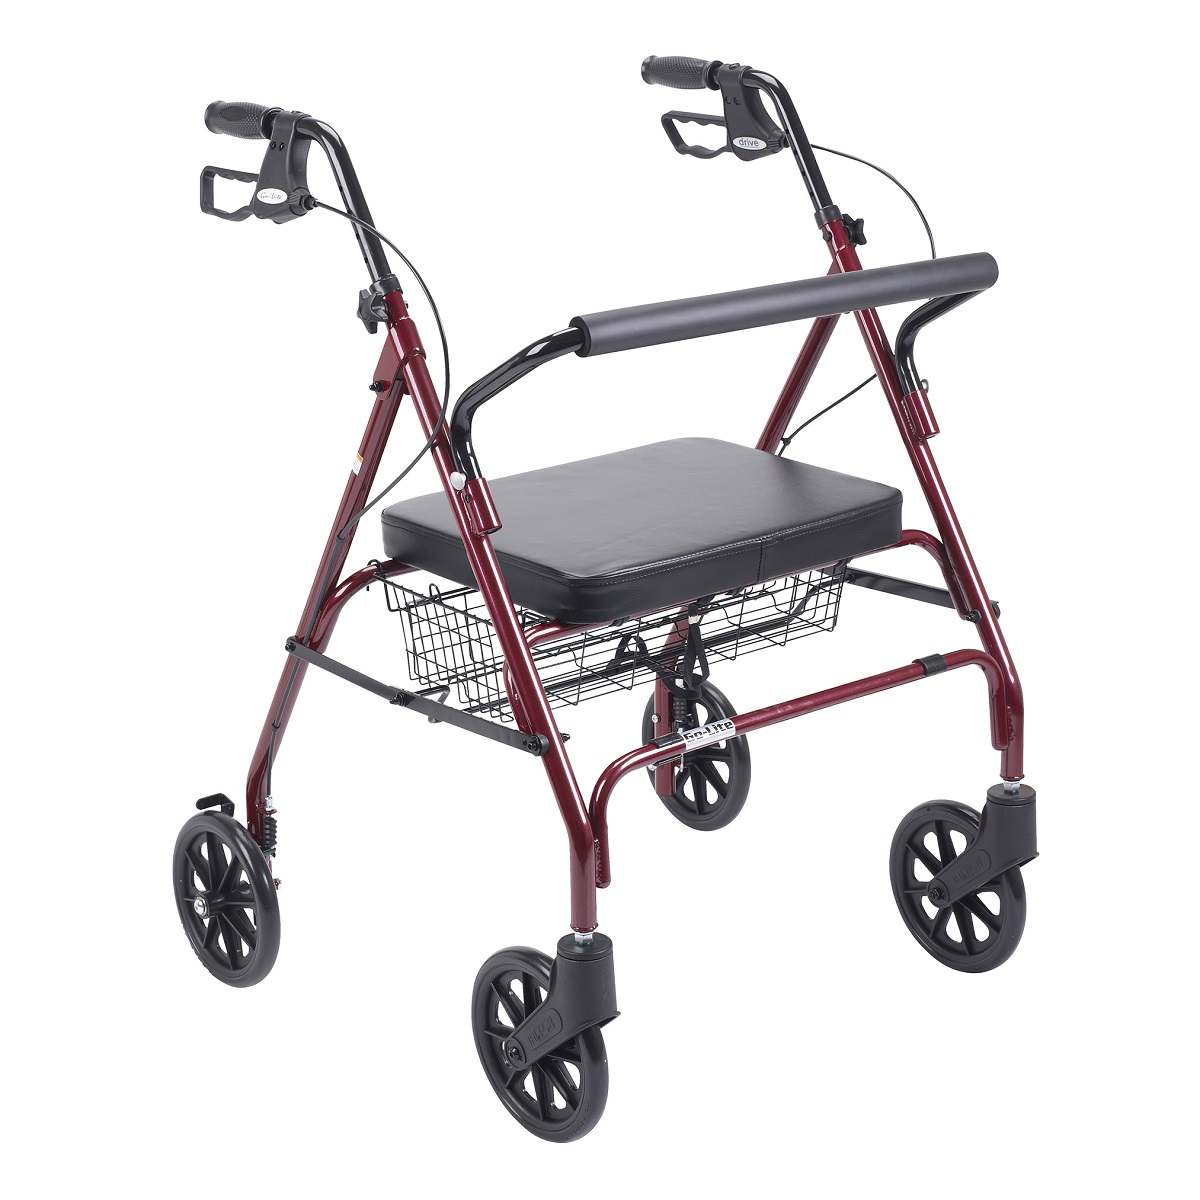 01 - Seat Assembly for Rollator 10215rd or 10215bl-rollator10215rd-1_1.jpg